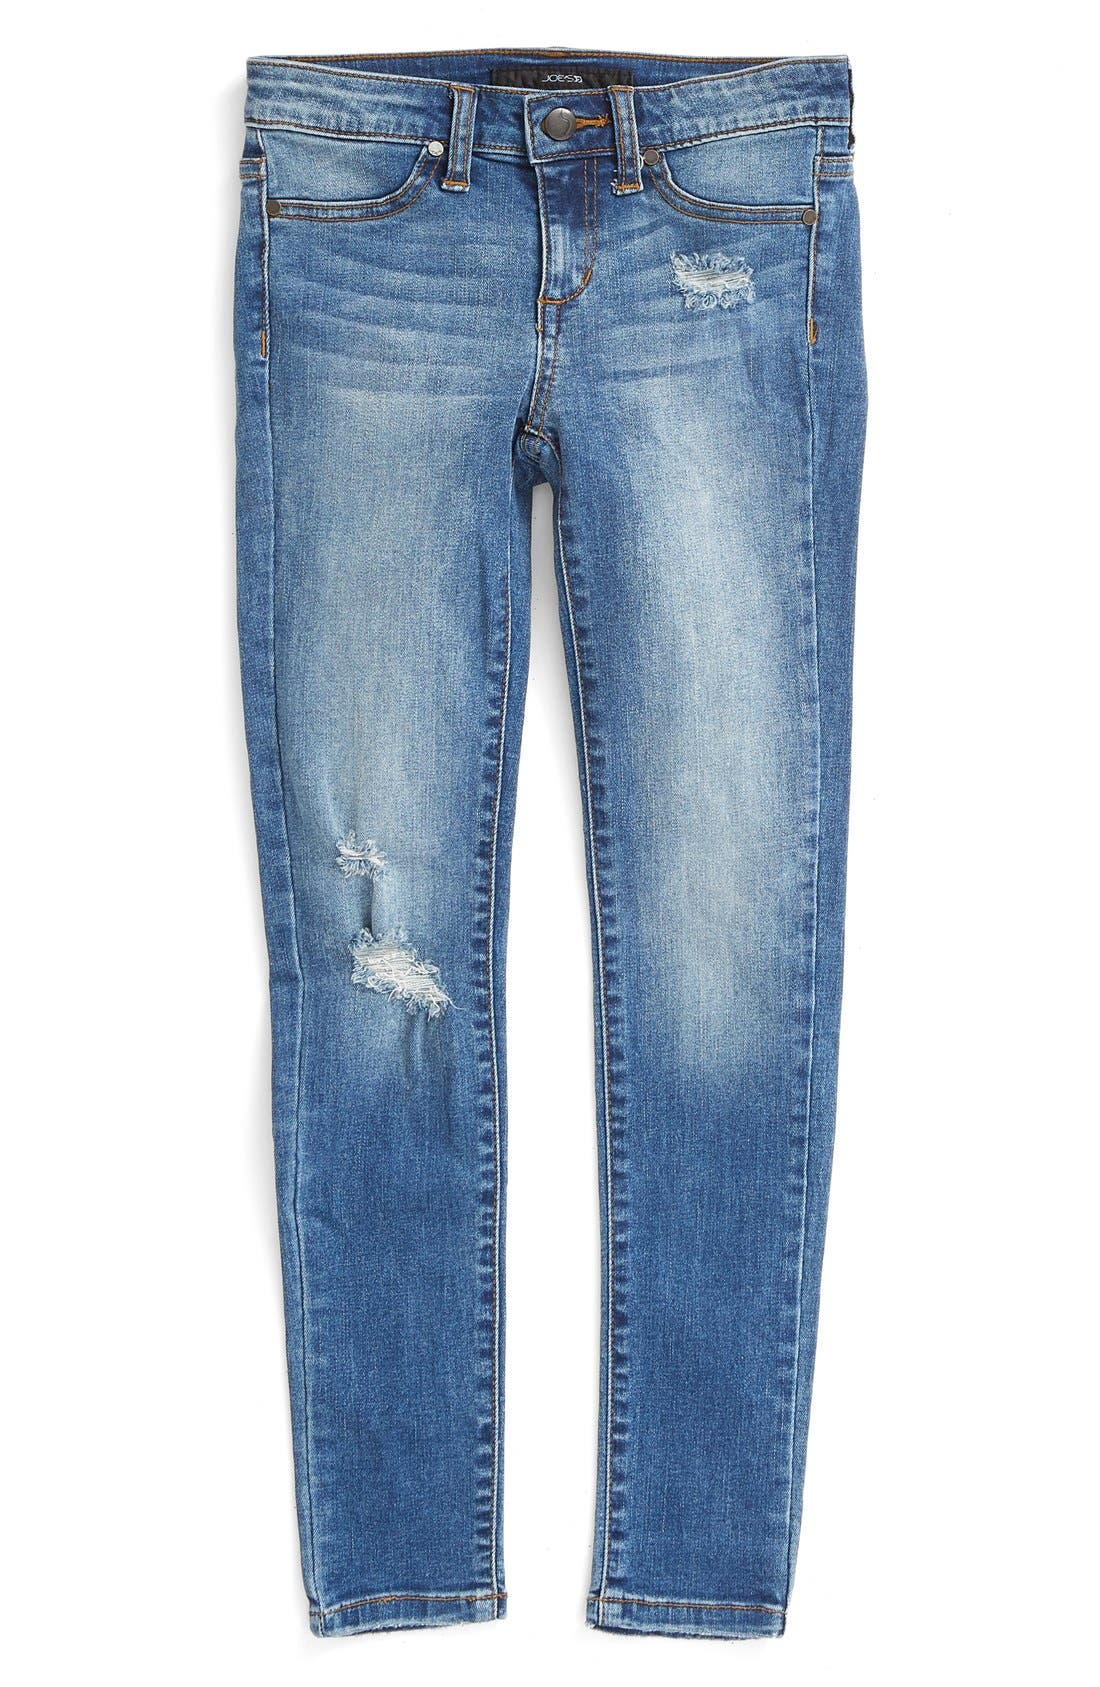 'Dawn' Distressed Jeans,                             Main thumbnail 1, color,                             456